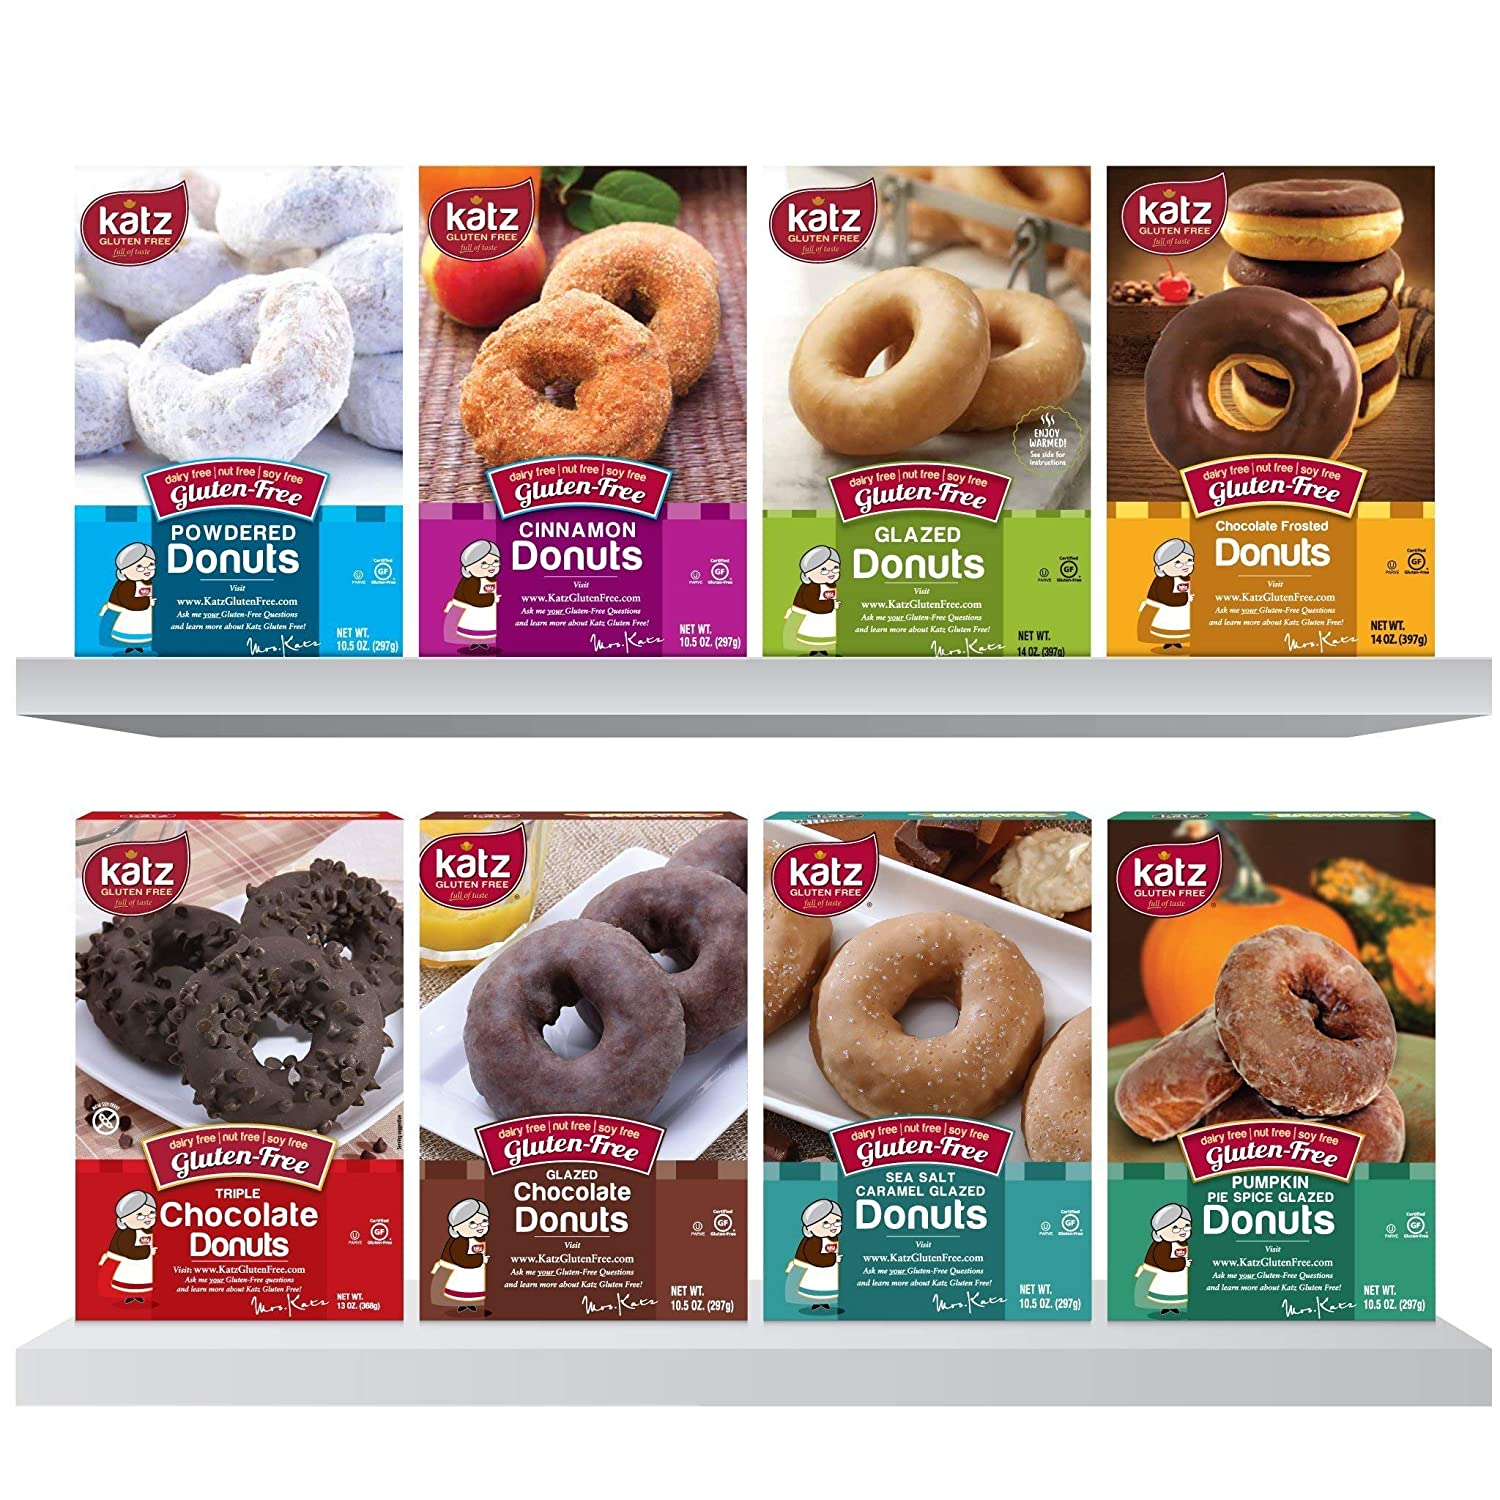 Katz Gluten Free Donuts – Top 8 Flavors – Free Shipping!